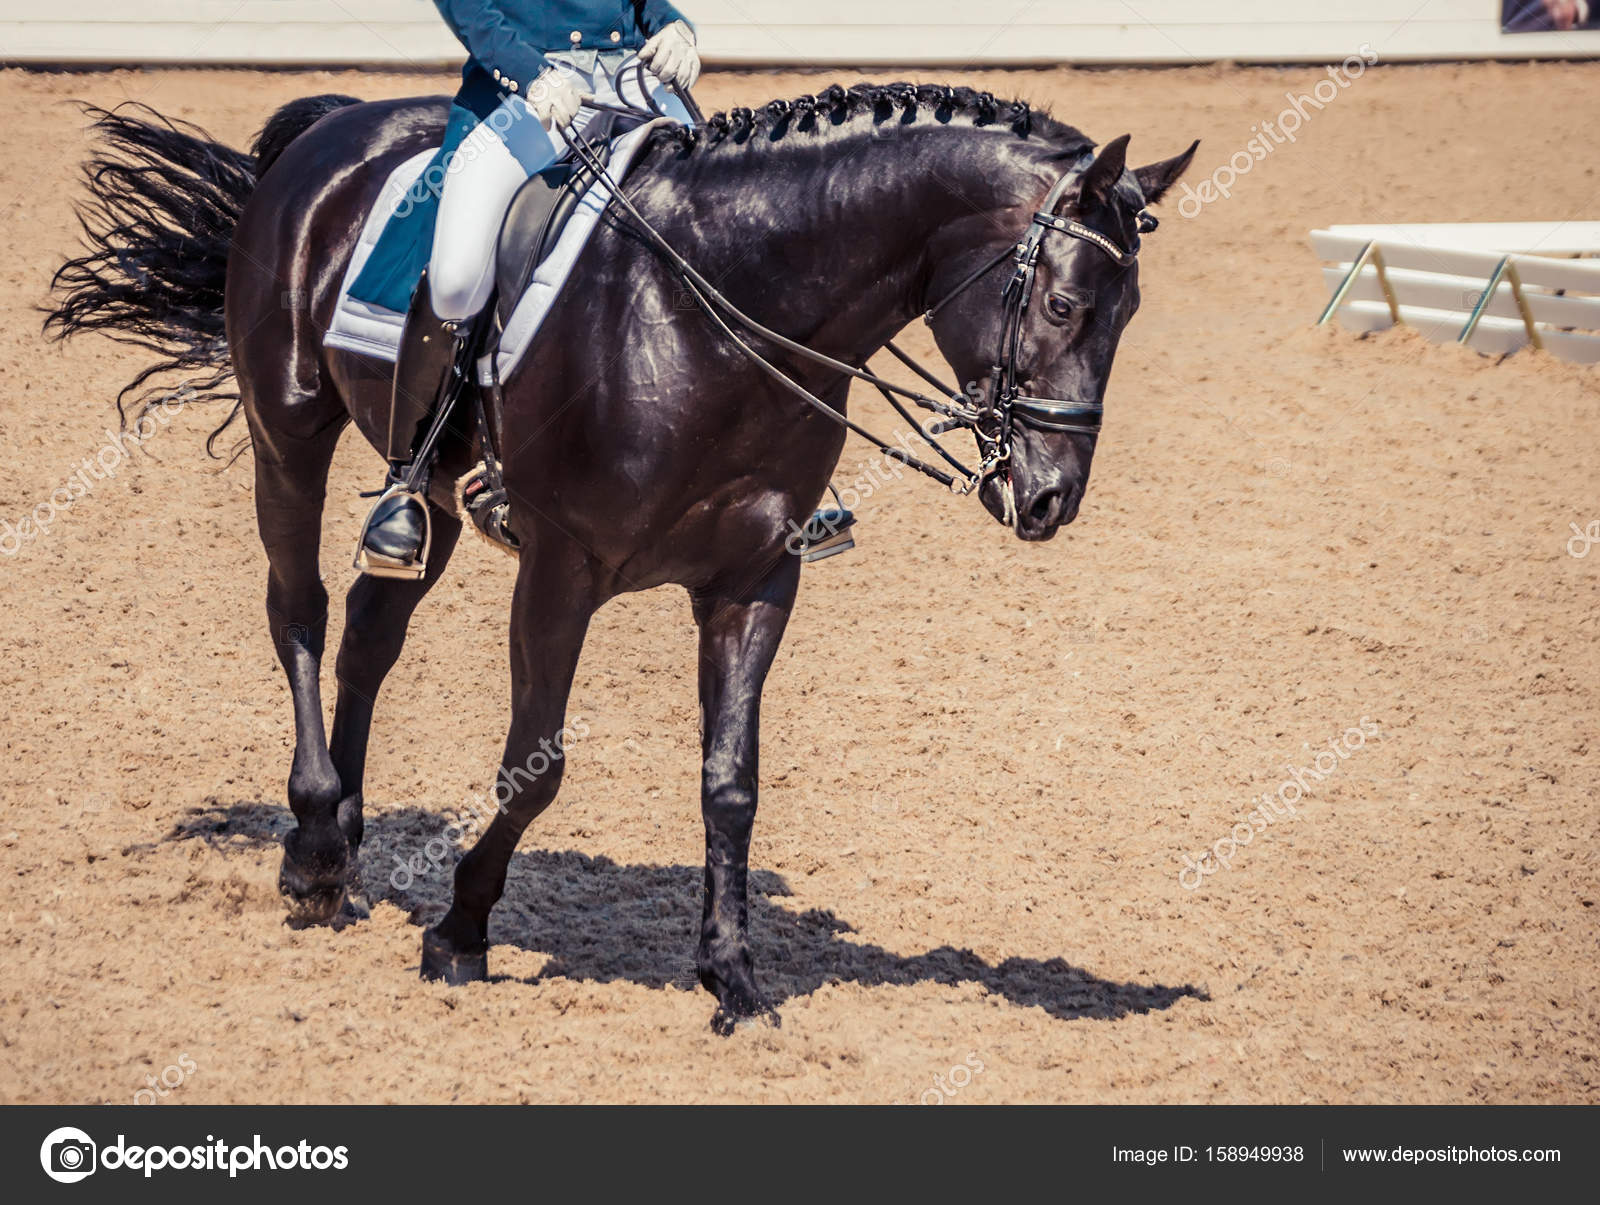 Black Horse Portrait During Dressage Competition Stock Photo C Martanovak 158949938